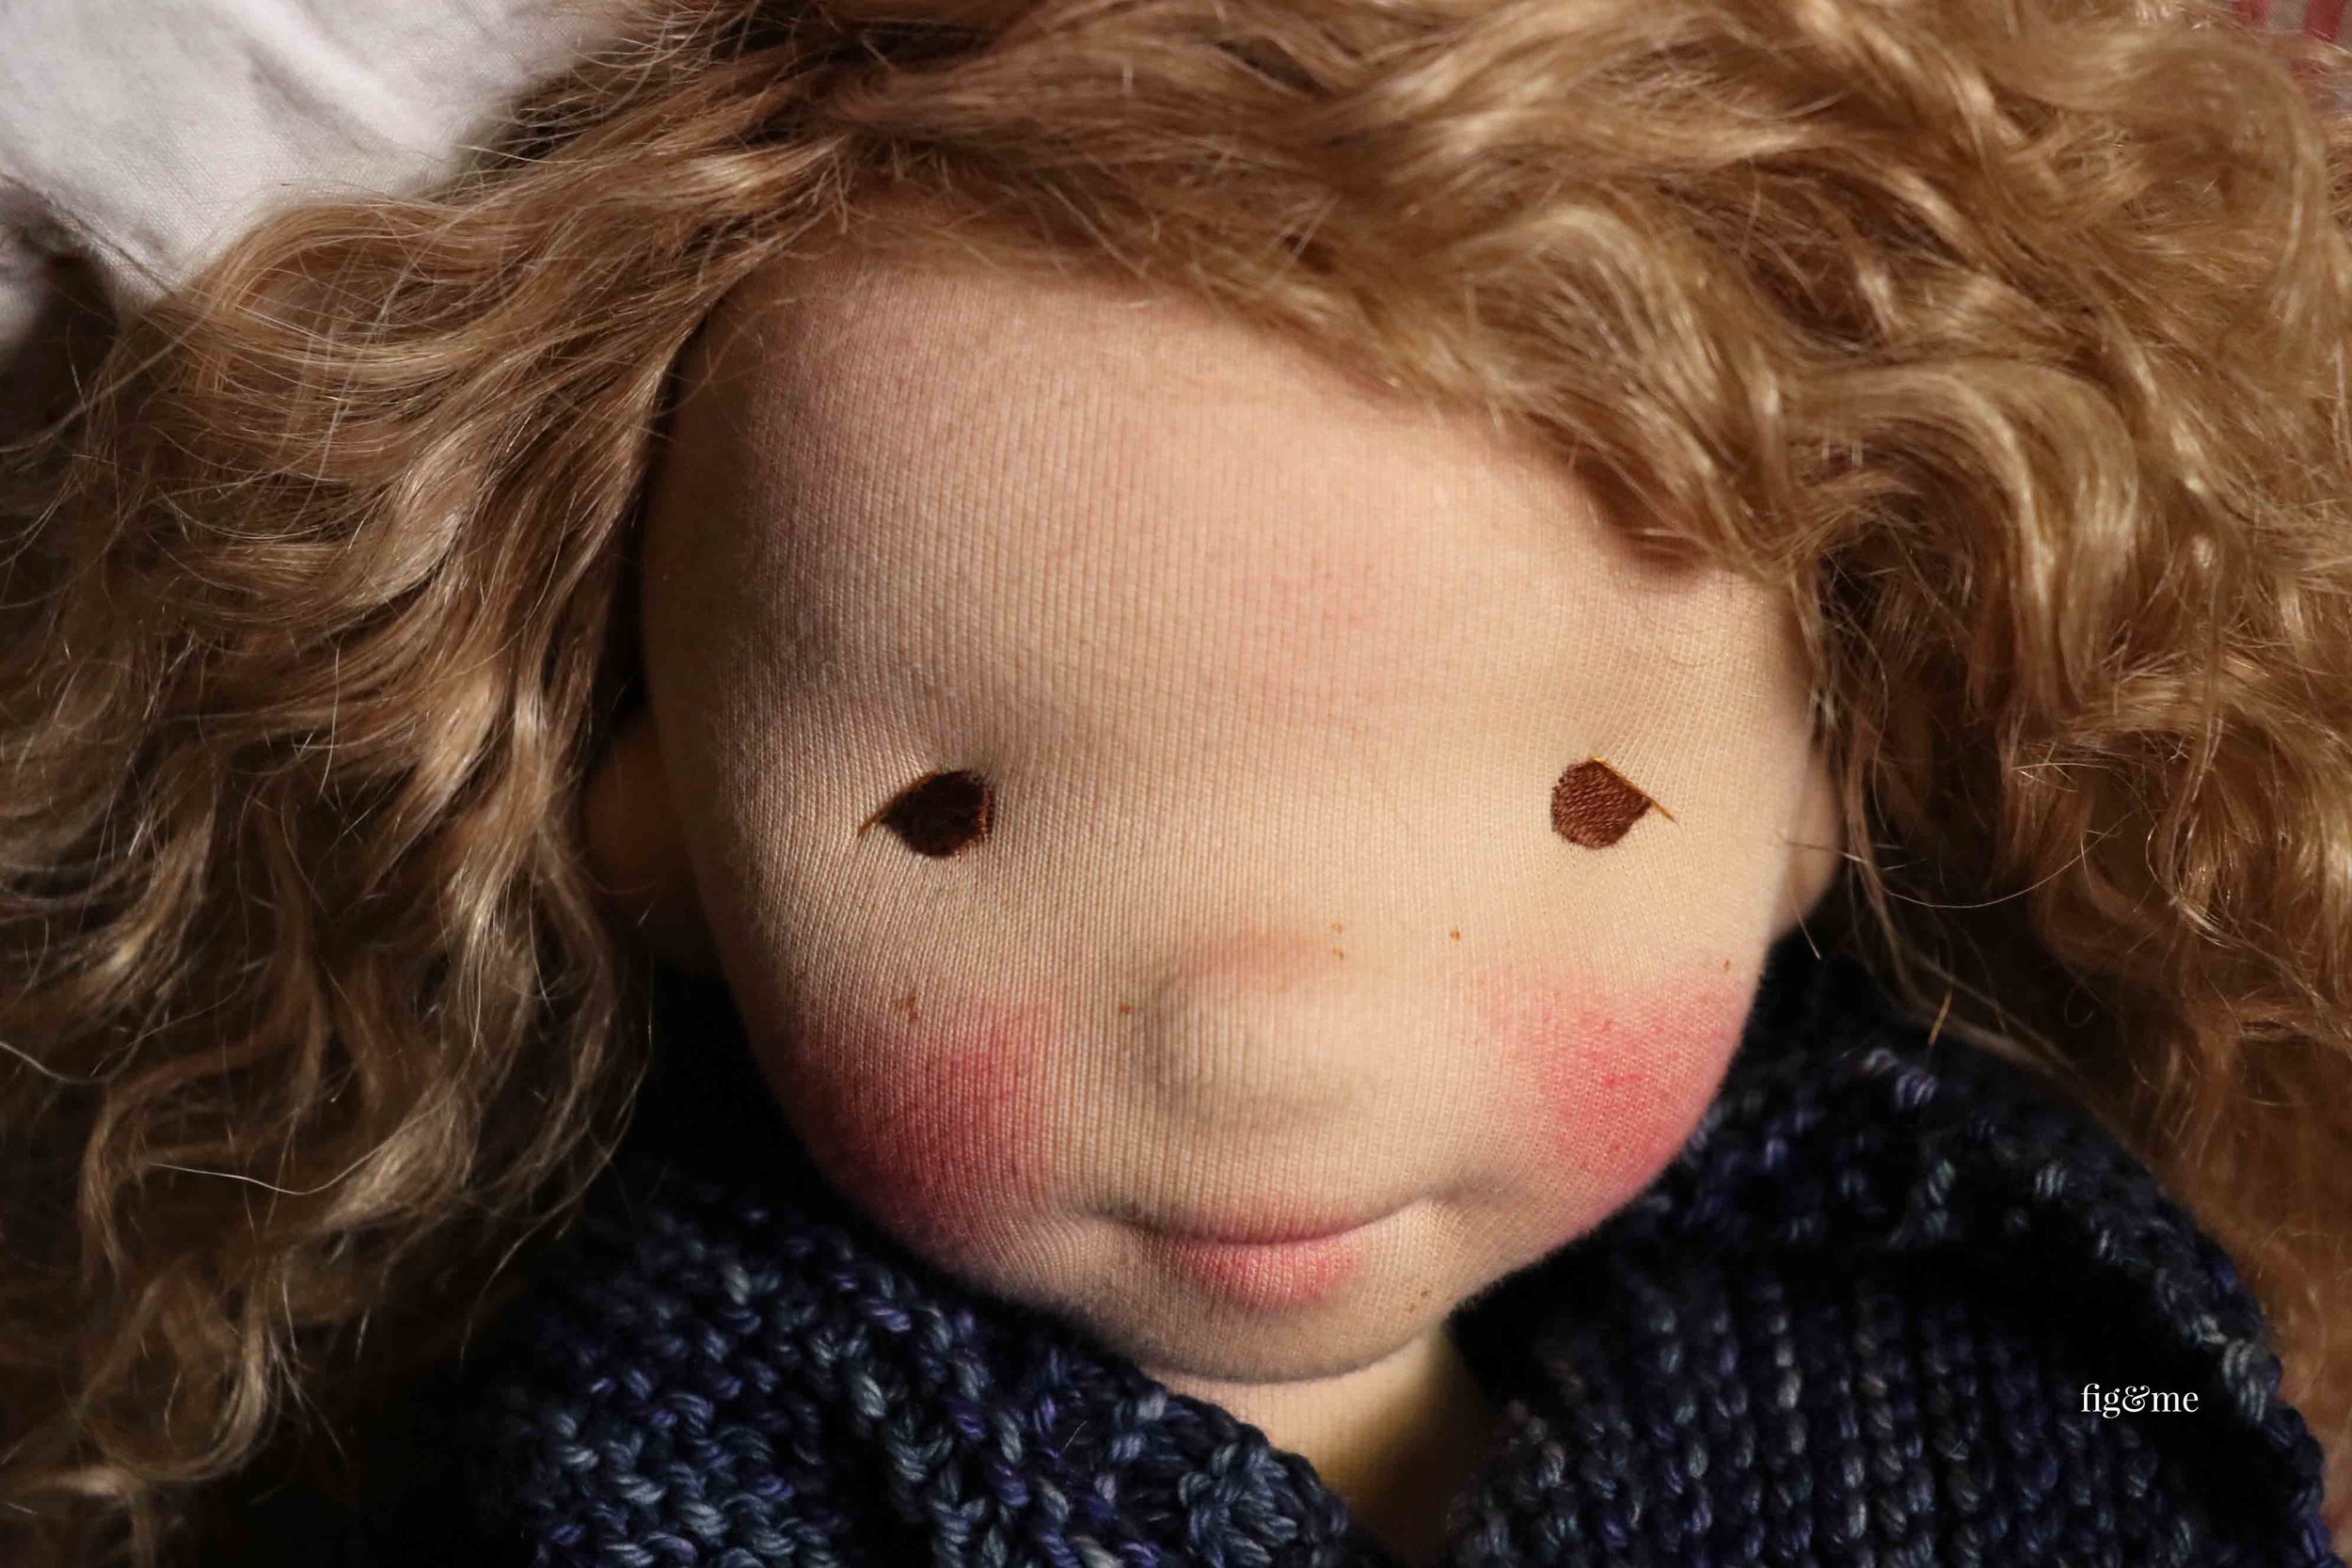 Little Thora, a natural fiber art doll by Fig and Me. Figlette style. #dollmaking #artdoll